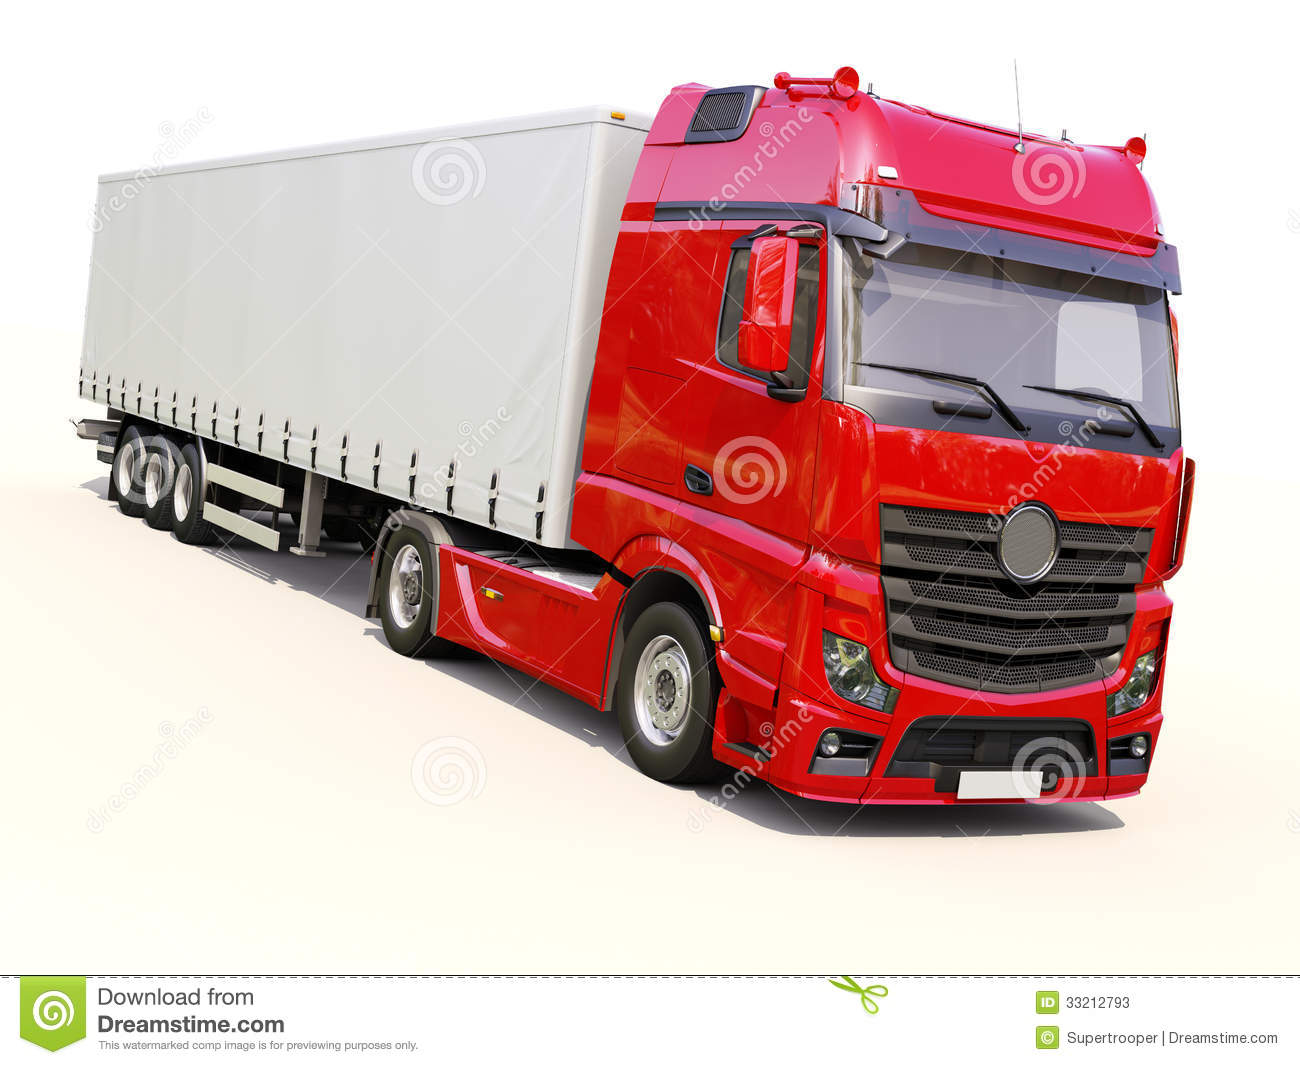 169 in addition Watch likewise Watch besides 56307 Scale R C Tractor Trucks 1 14 also Watch. on semi tractor trailer truck